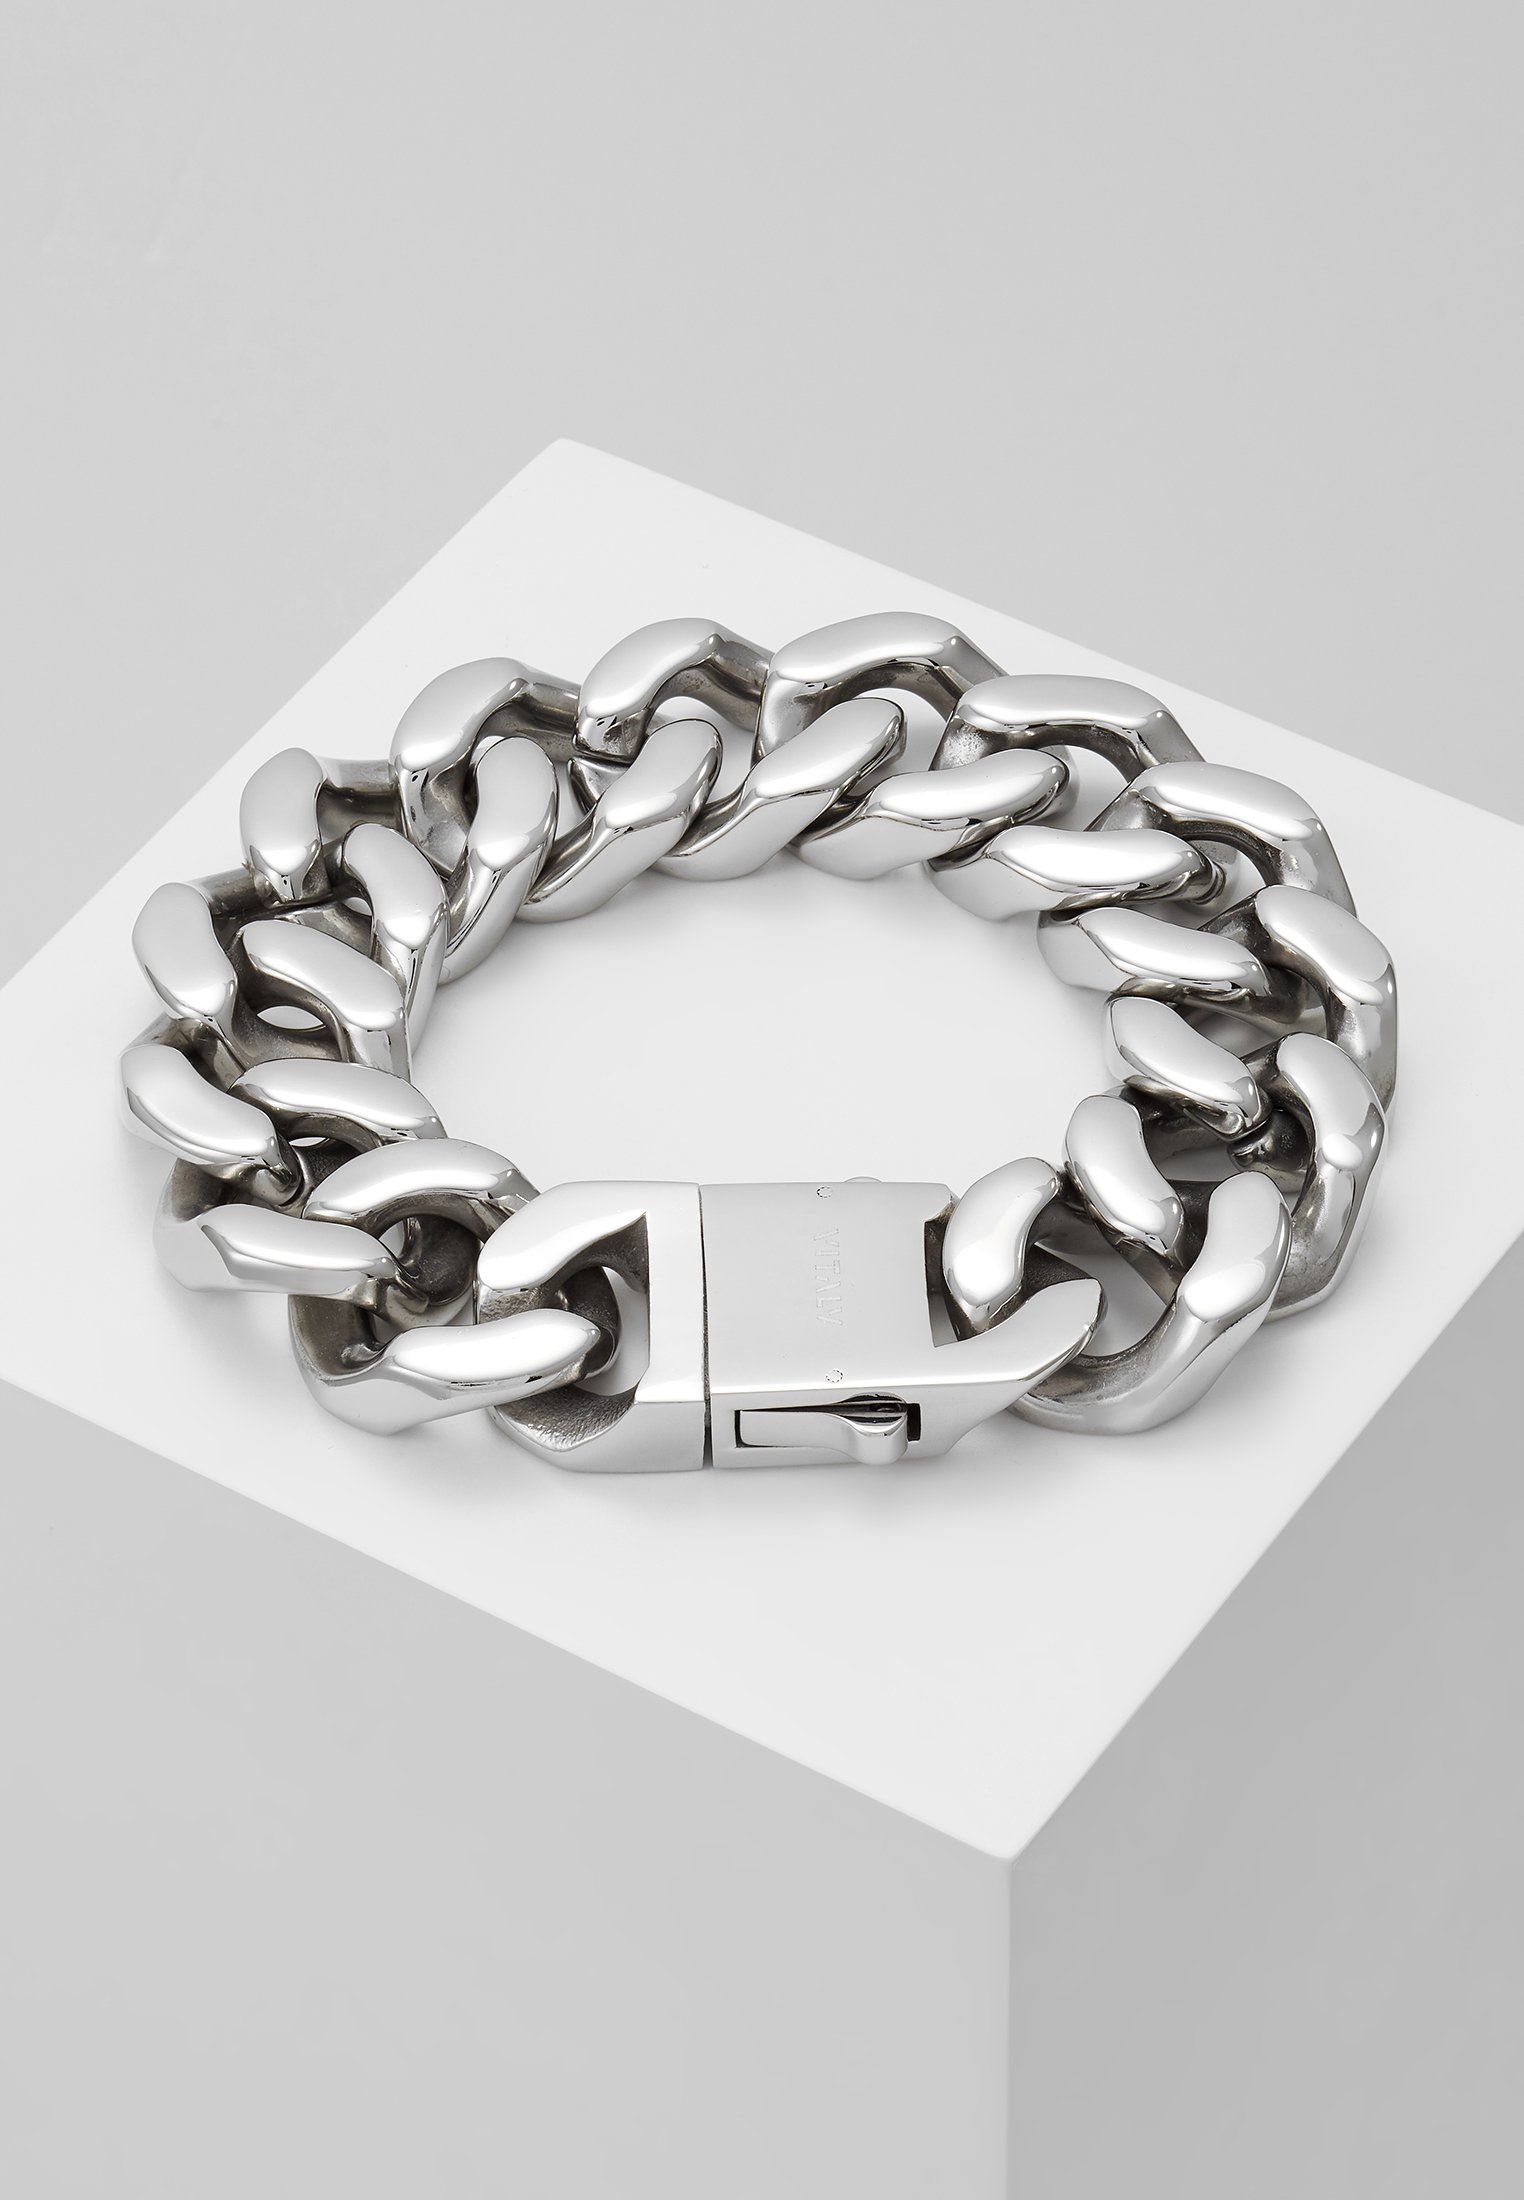 2013 Outlet Vitaly INTEGER - Bracelet - stainless steel | men's accessories 2020 hvQ5a